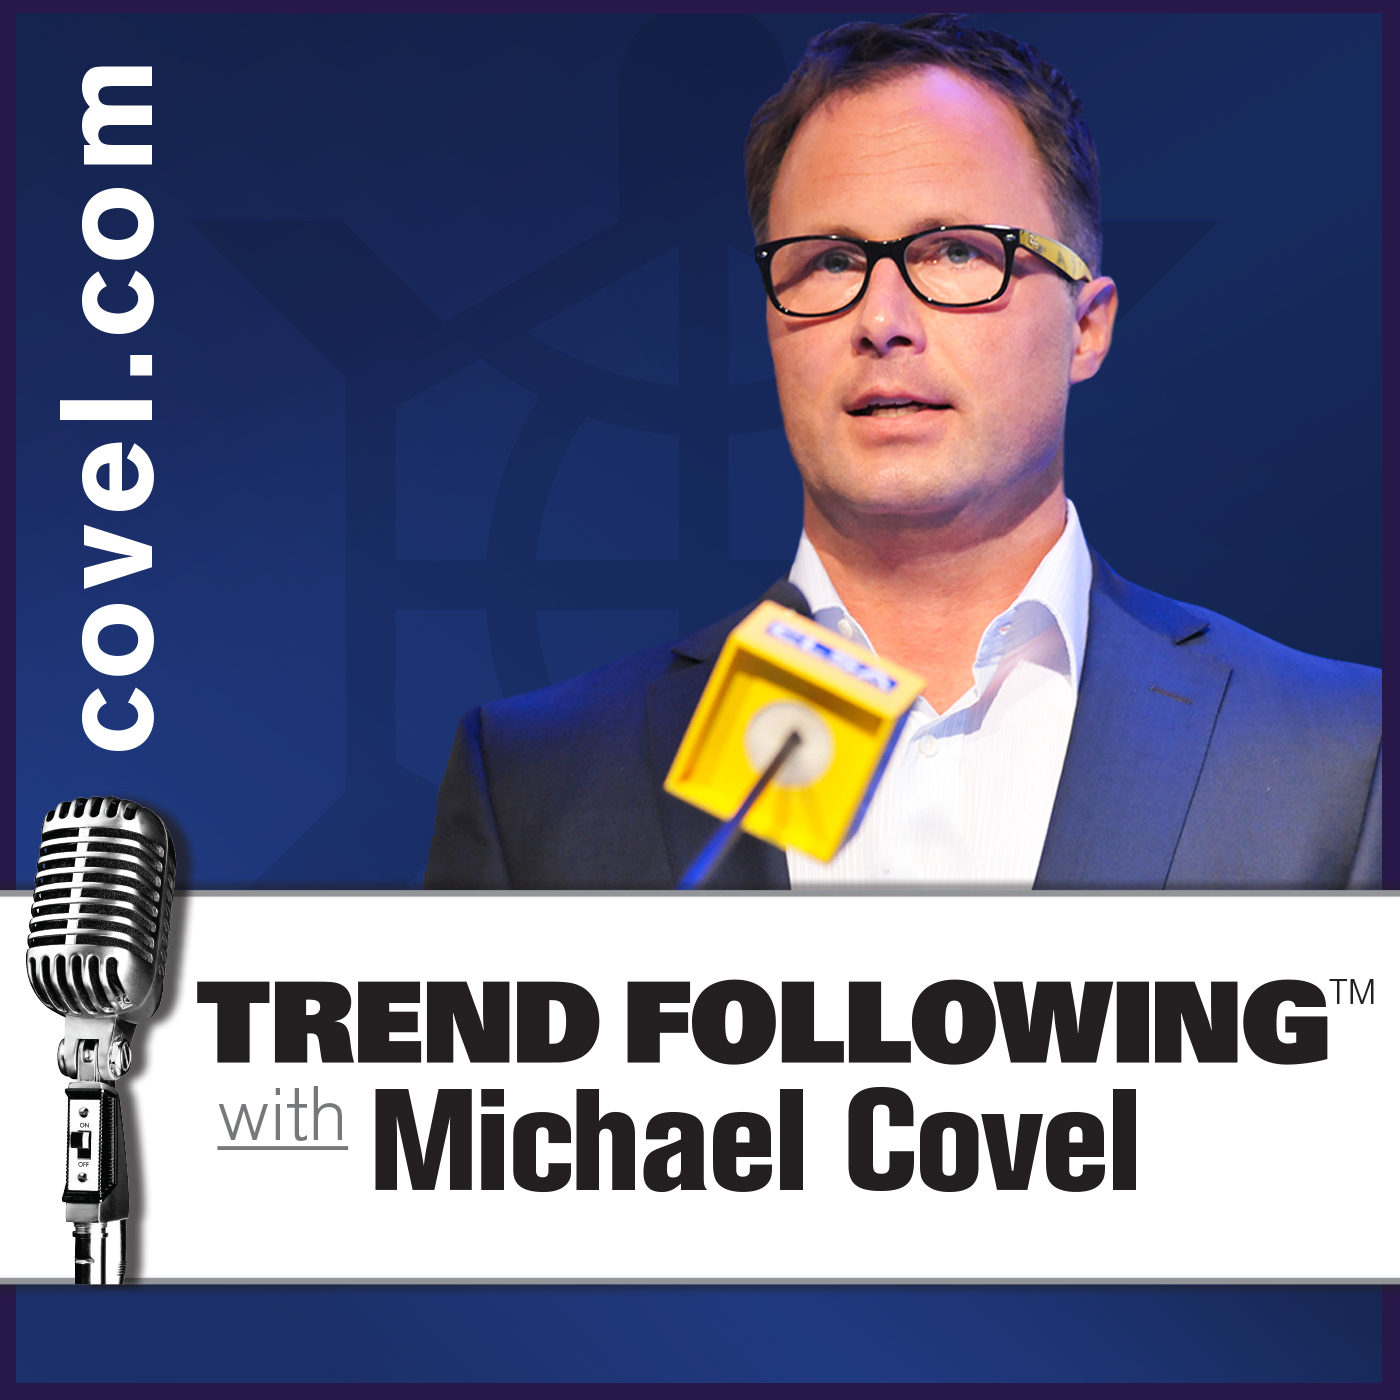 Ep. 467: David Burkus Interview with Michael Covel on Trend Following Radio